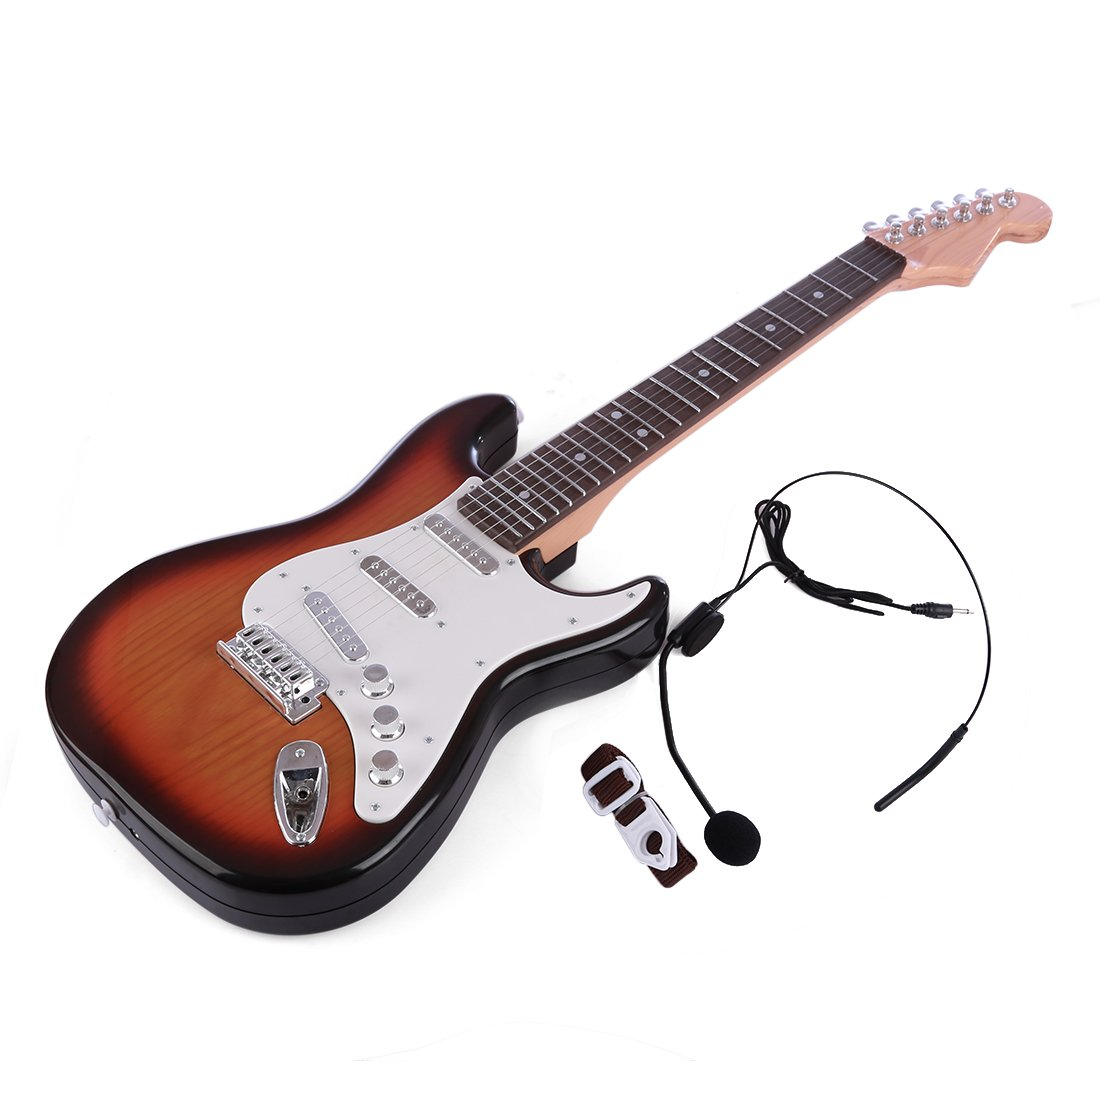 Yamix Guitar for Kids, 6 Strings Rock Band Music Electric Guitar Band Musical Guitar Playthings Rock Star Guitar Kids Musical Instruments Educational Toy by Yamix